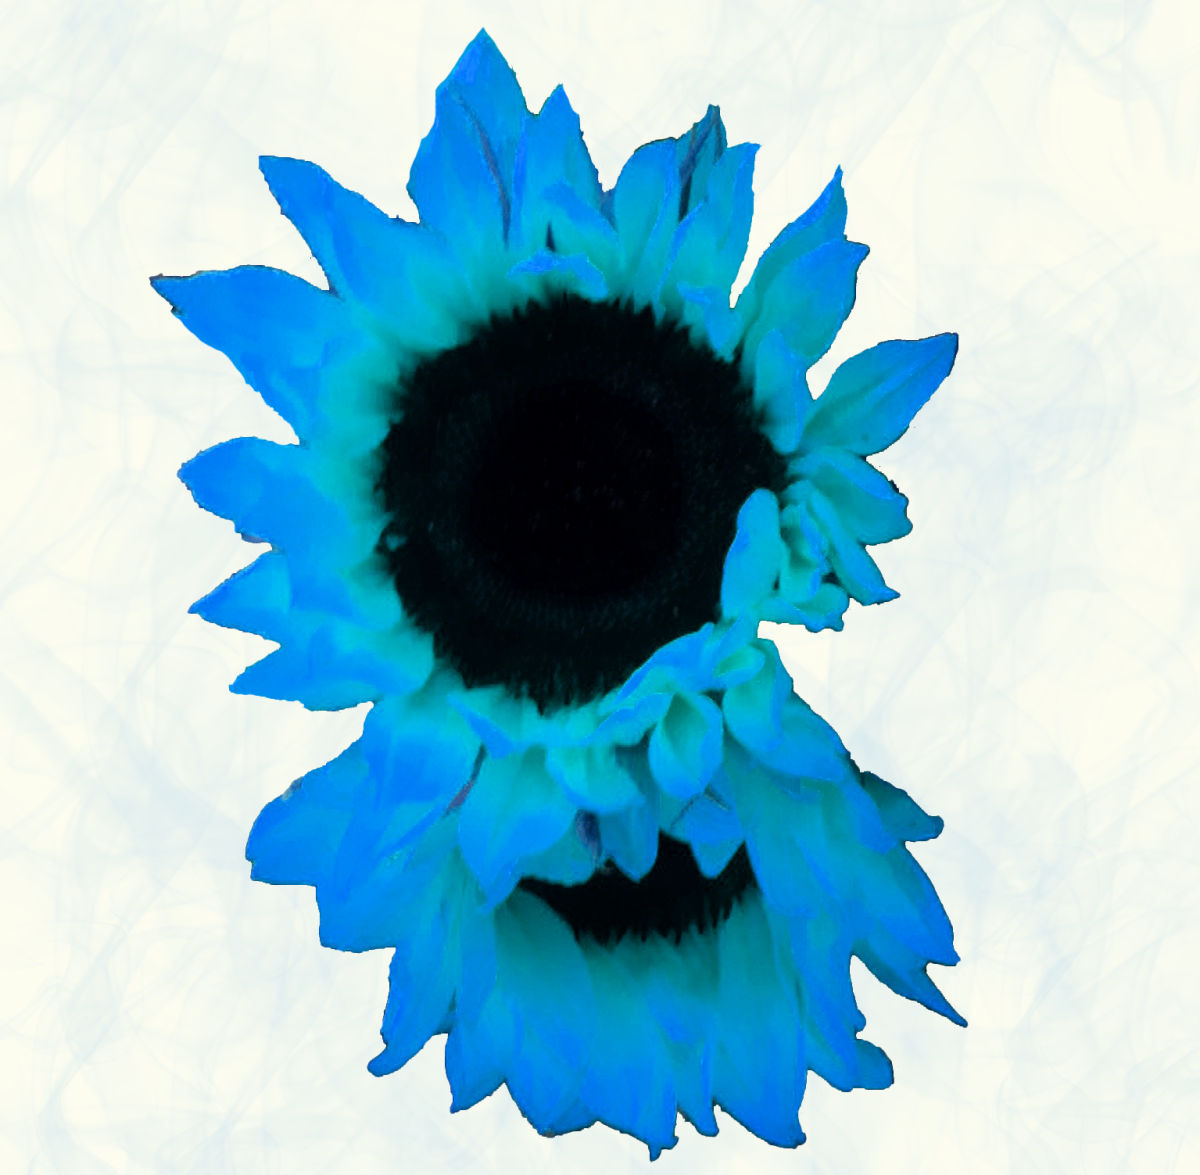 Blue sunflowers that I offered in my Zazzle store.